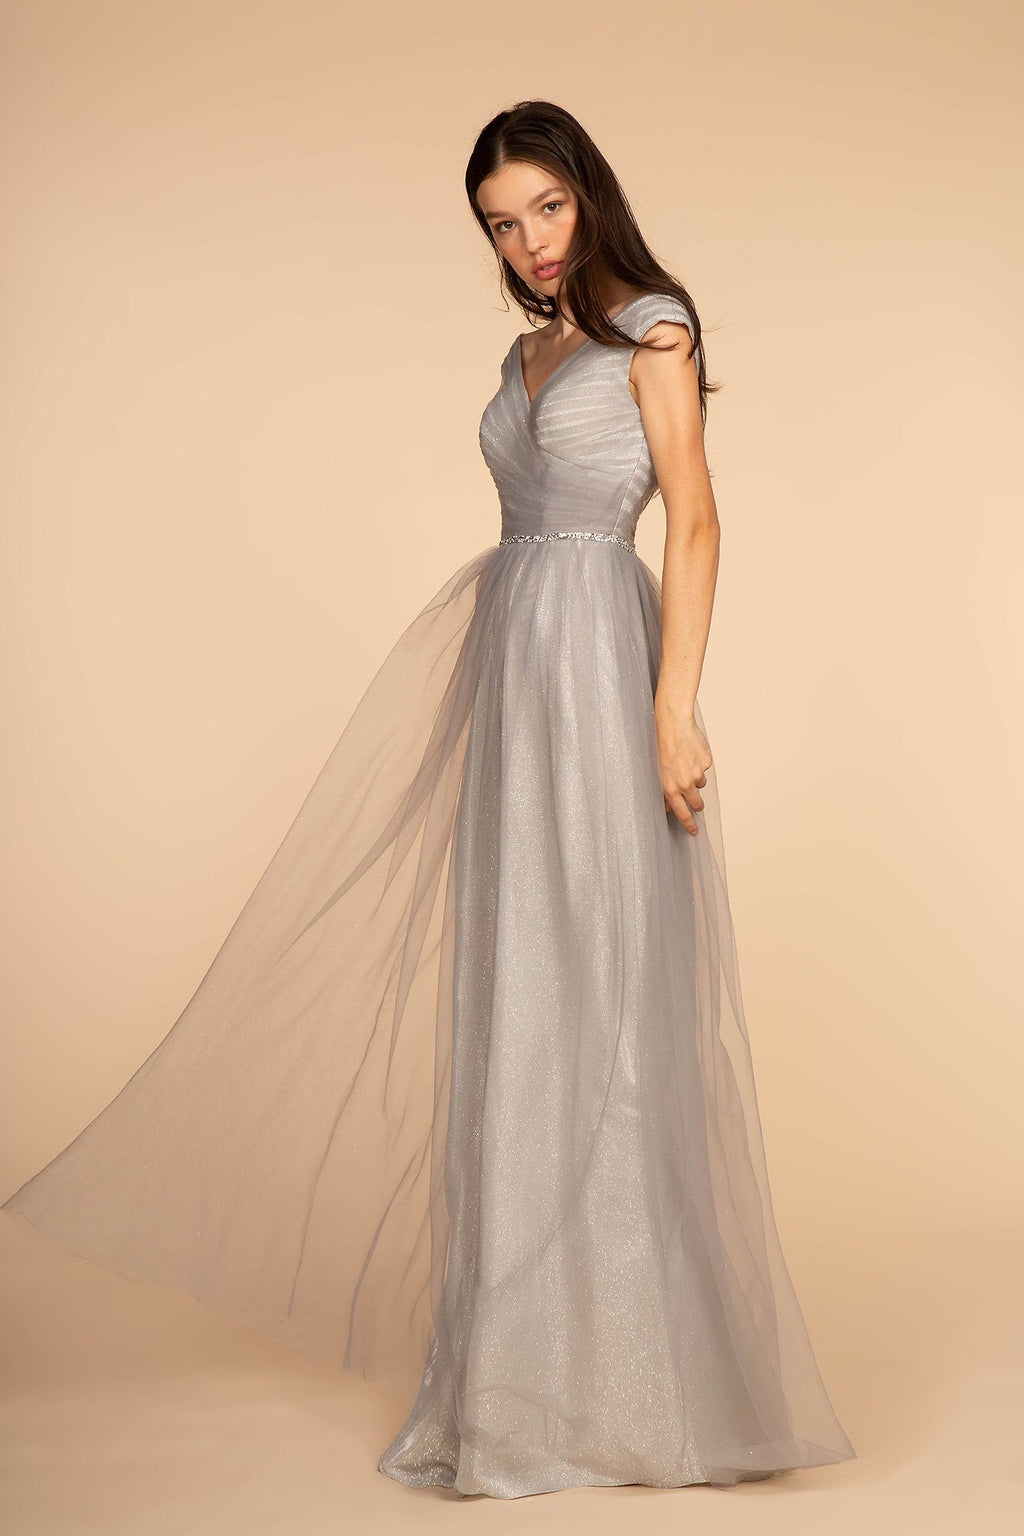 Cap sleeve ball gown dress gls 2560-Simply Fab Dress